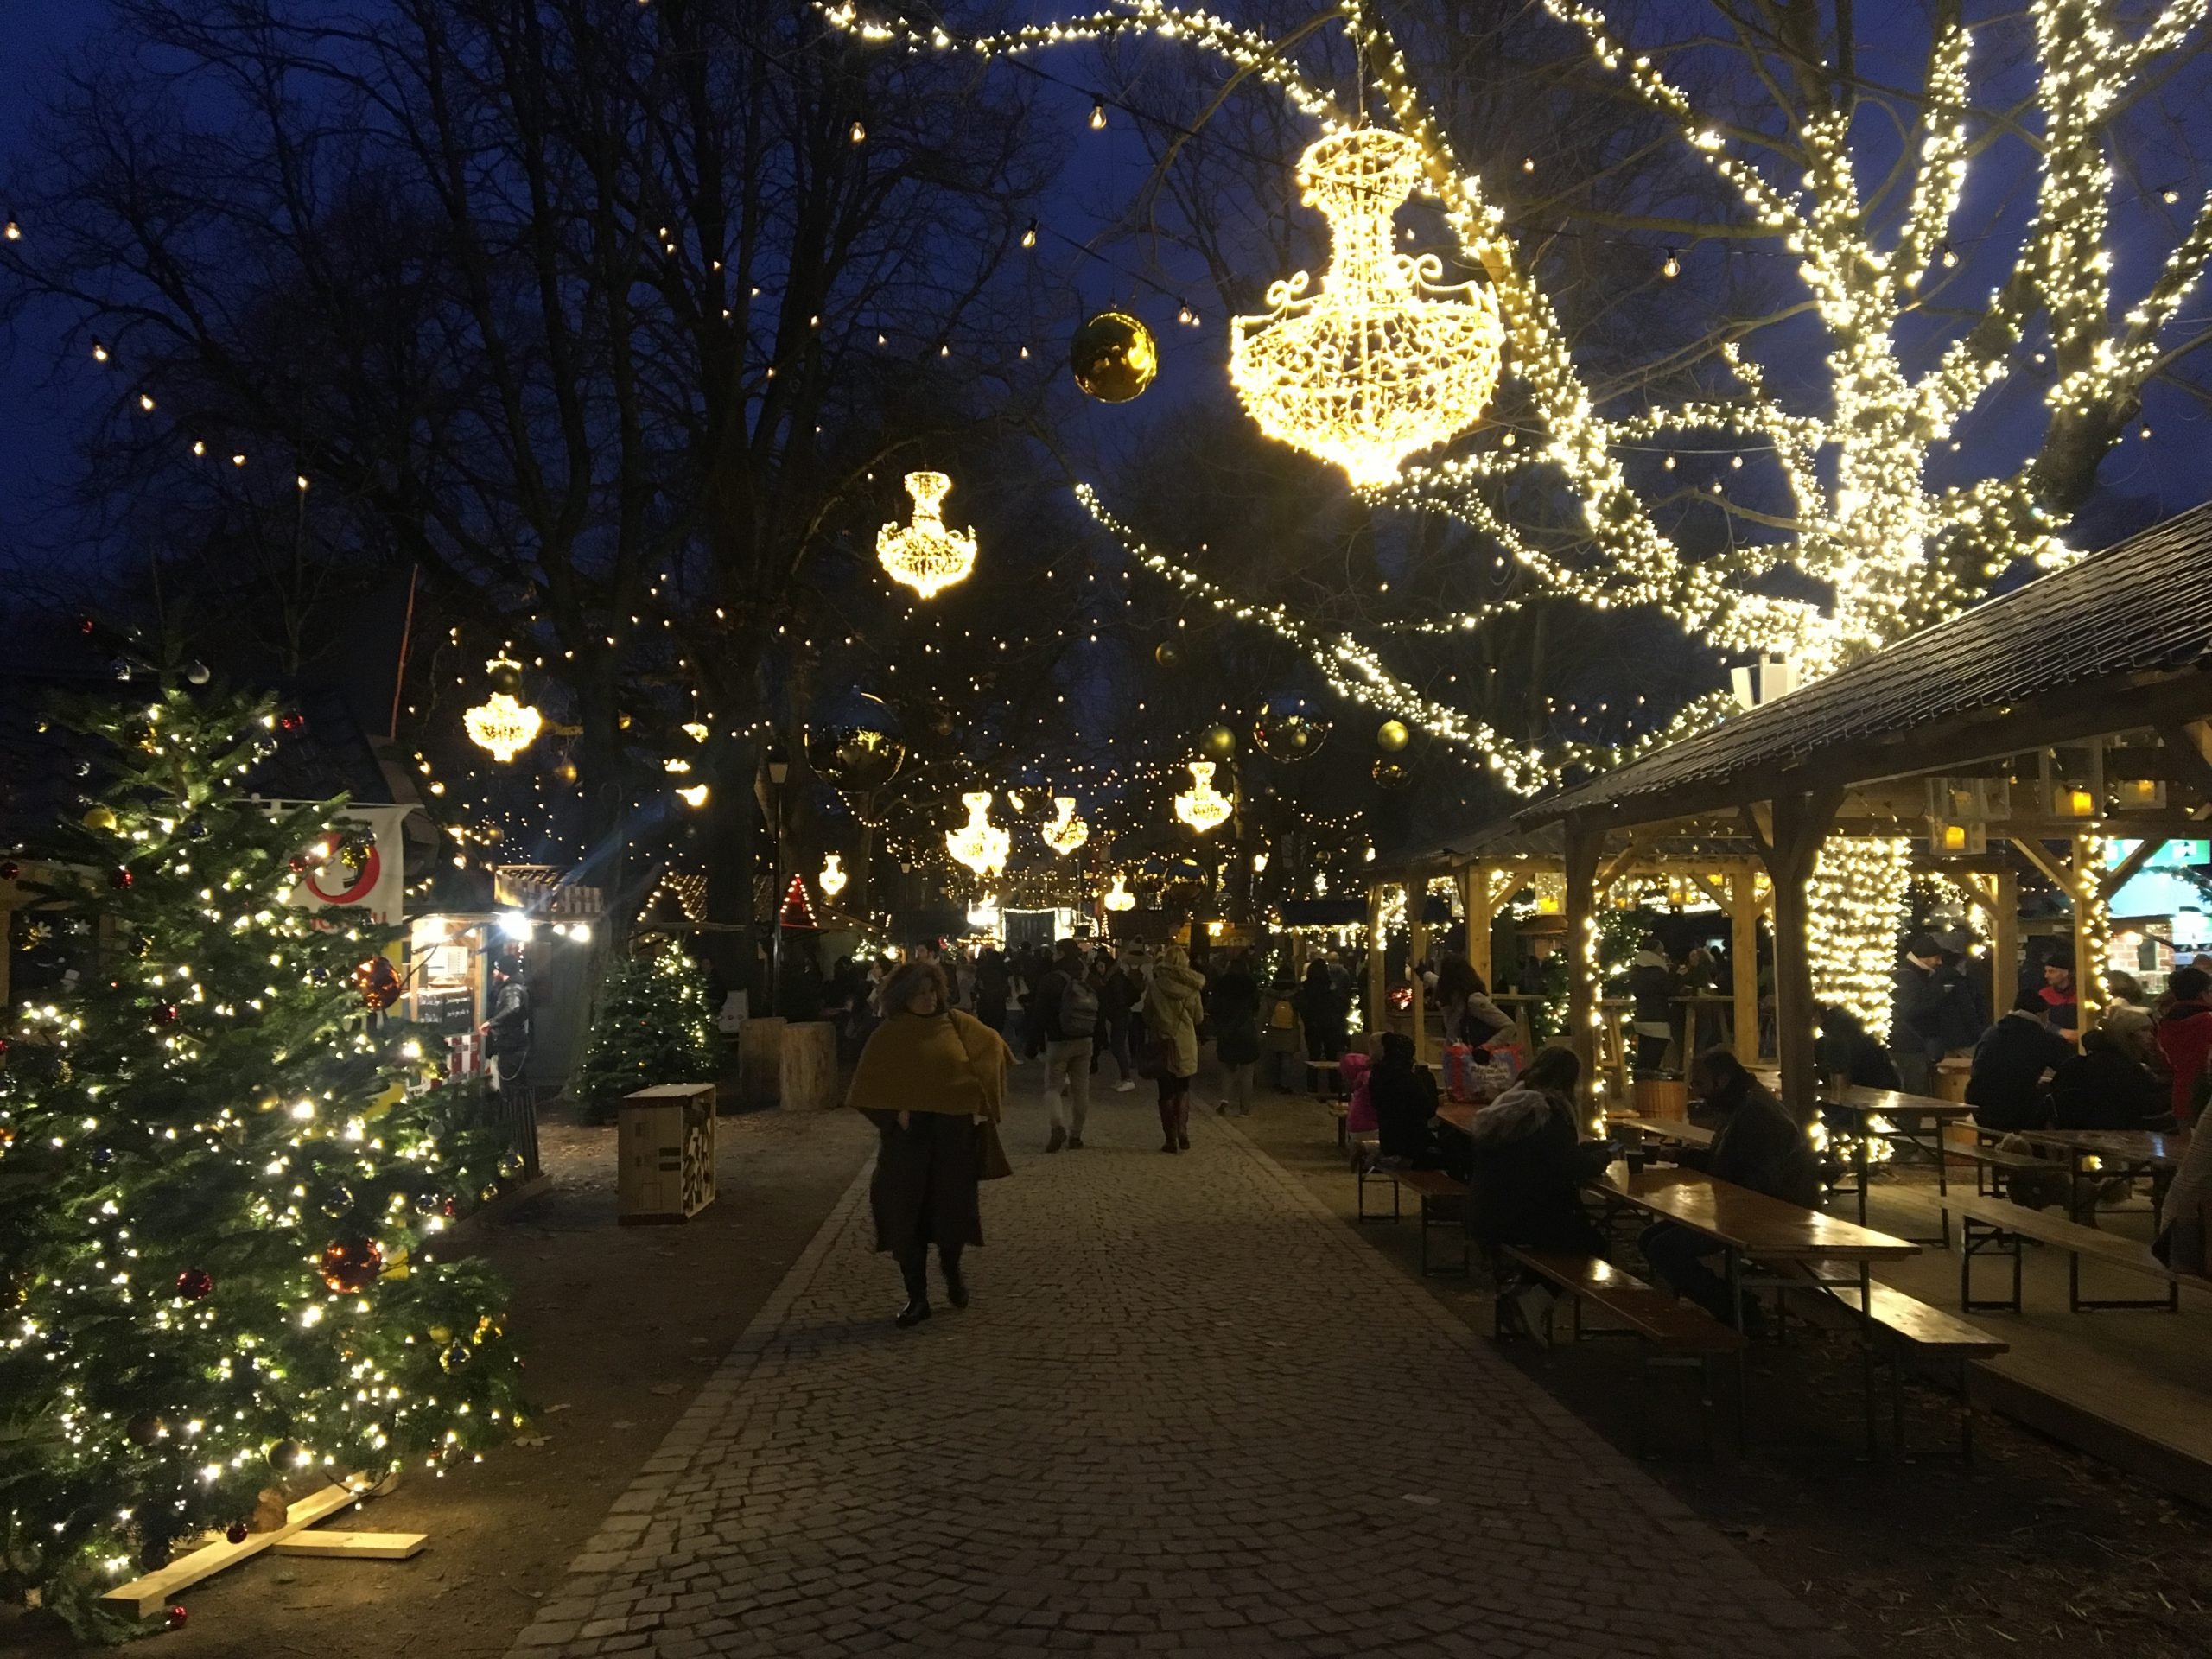 Christmas in Switzerland: Christmas Market